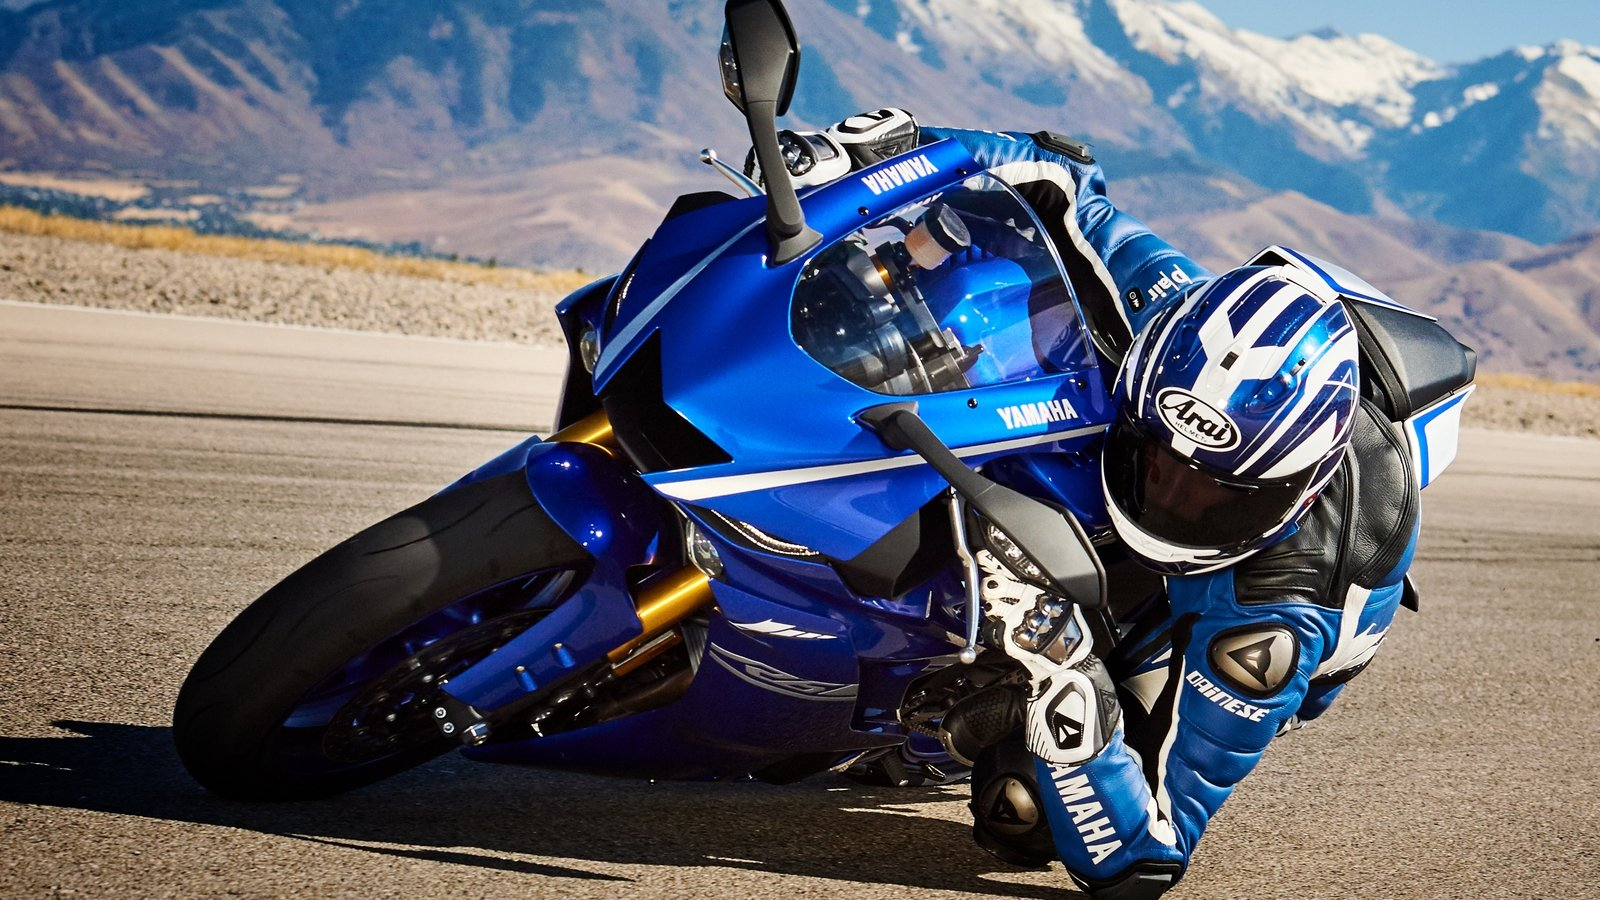 2017 2018 Yamaha Yzf R6 Pictures Photos Wallpapers And Video